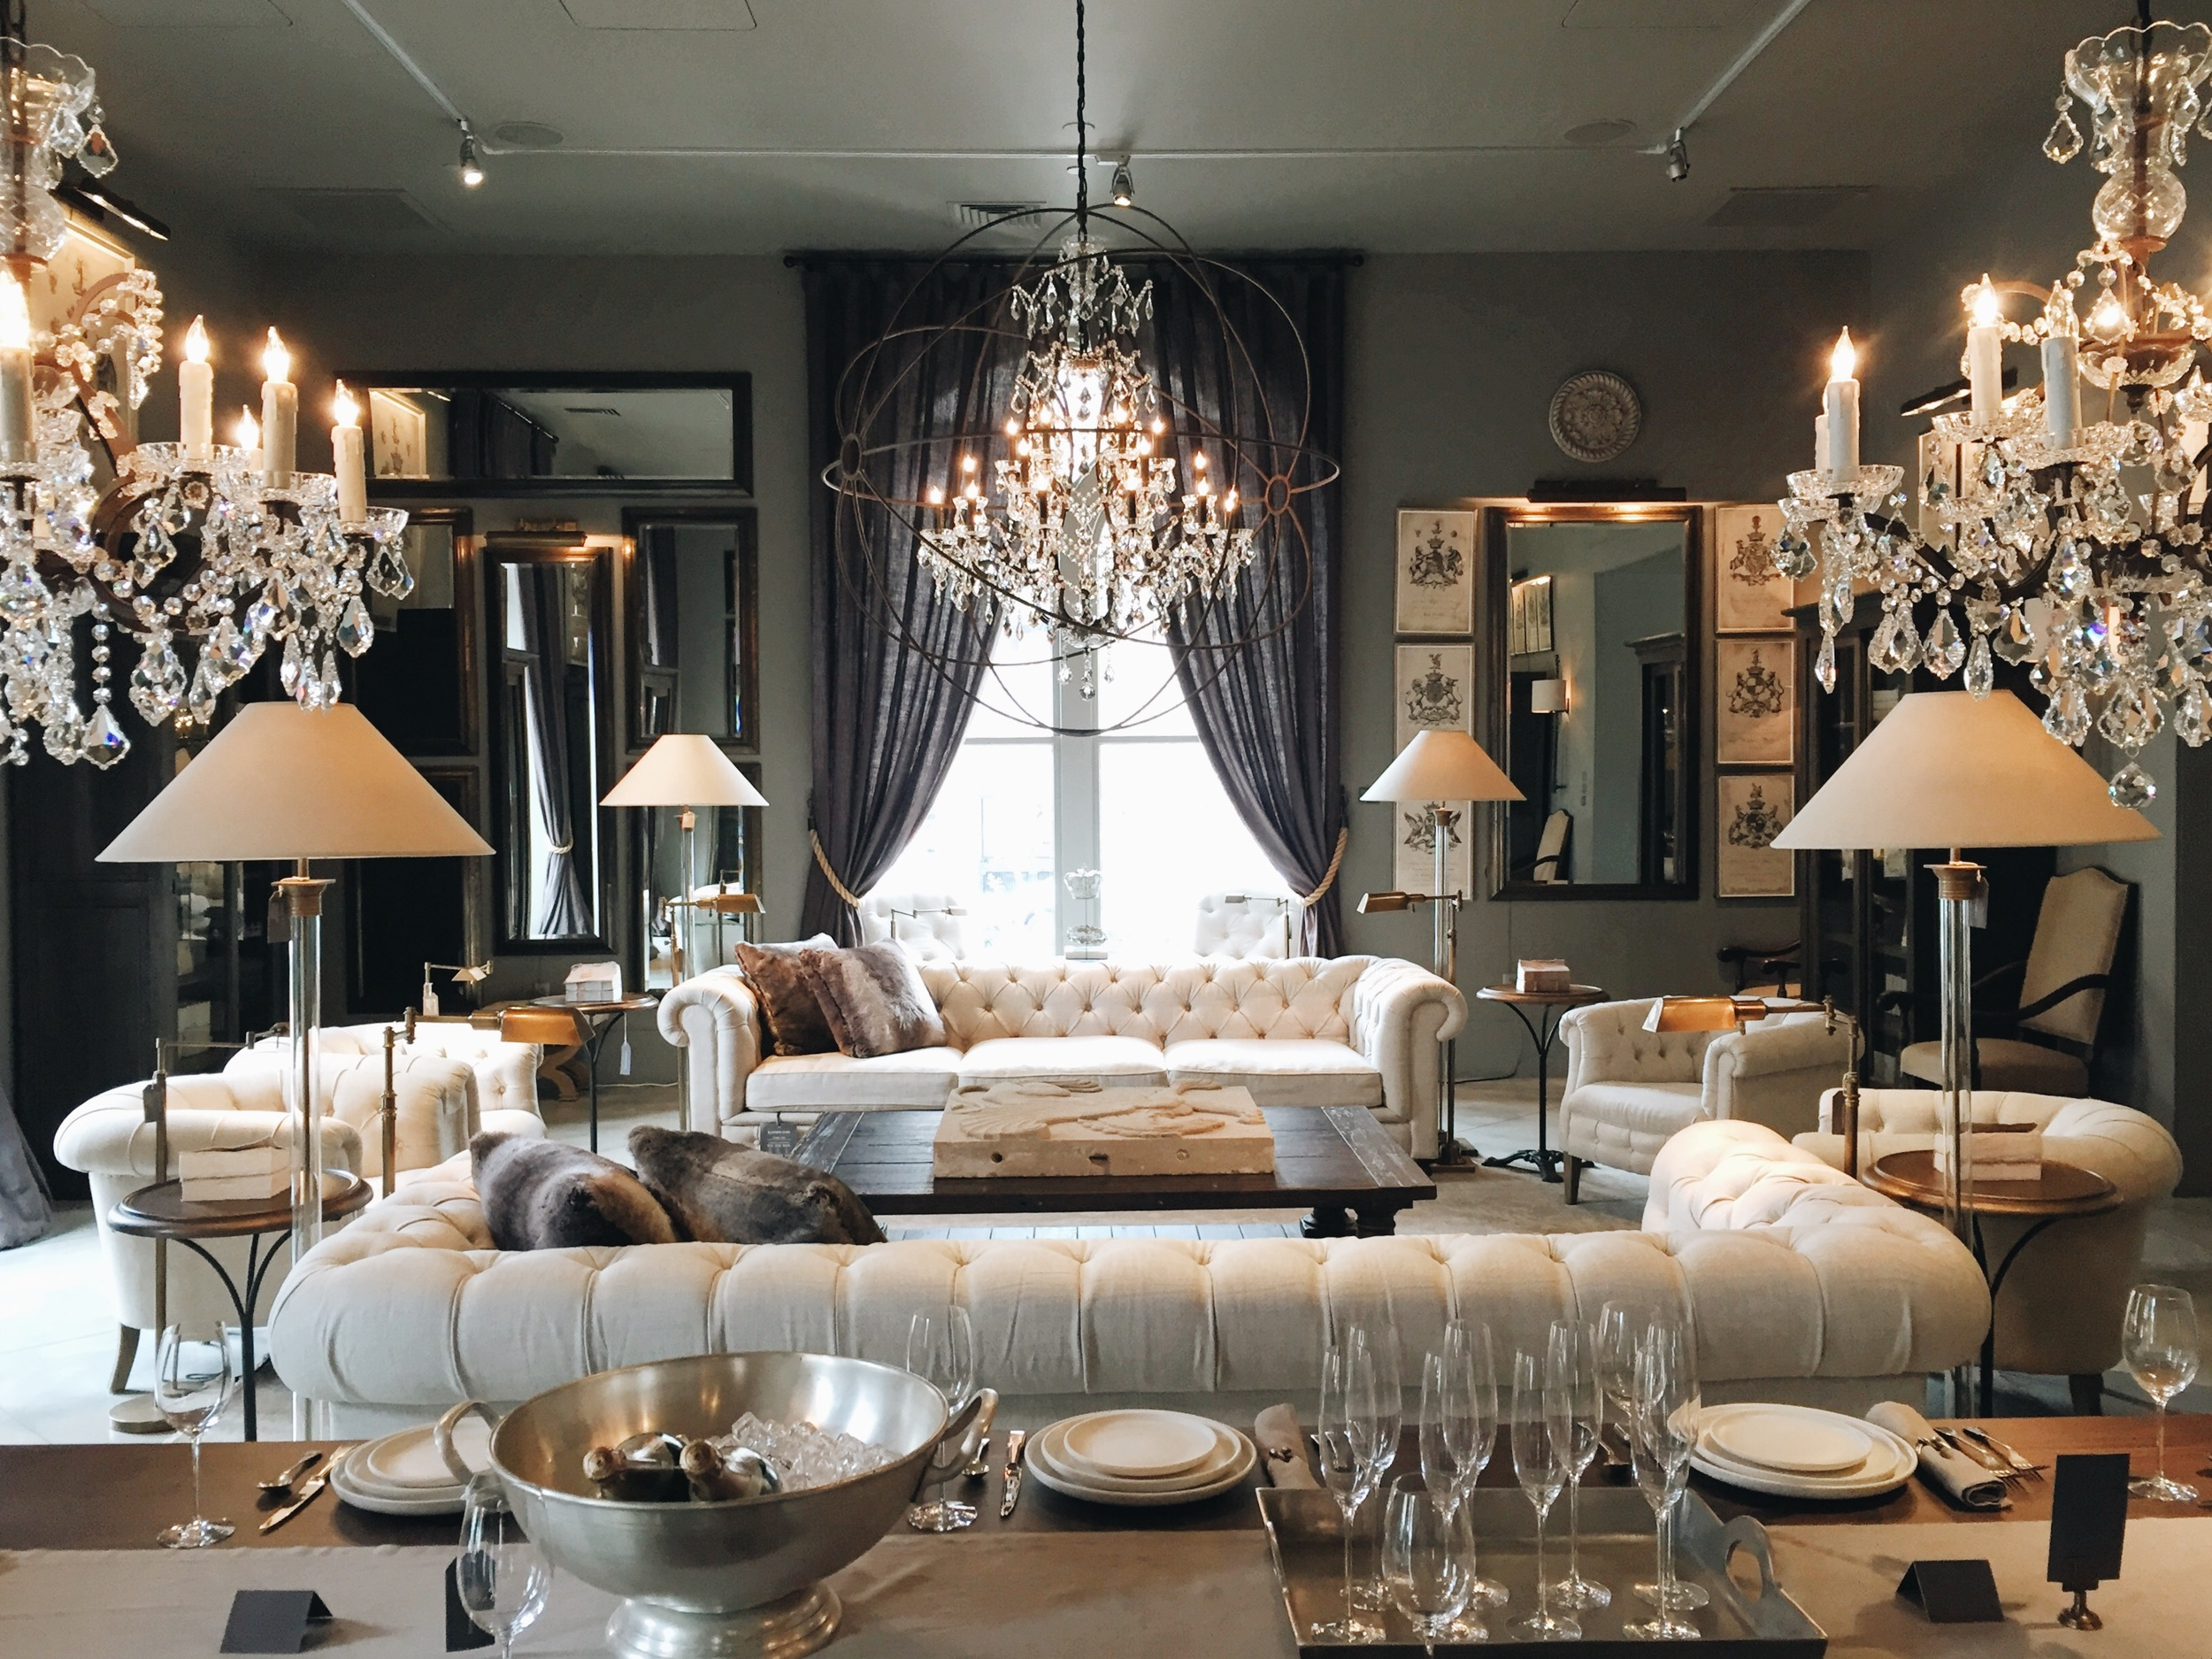 {Mornings spent at Restoration Hardware aren't too bad...the Boston showroom is incredible}